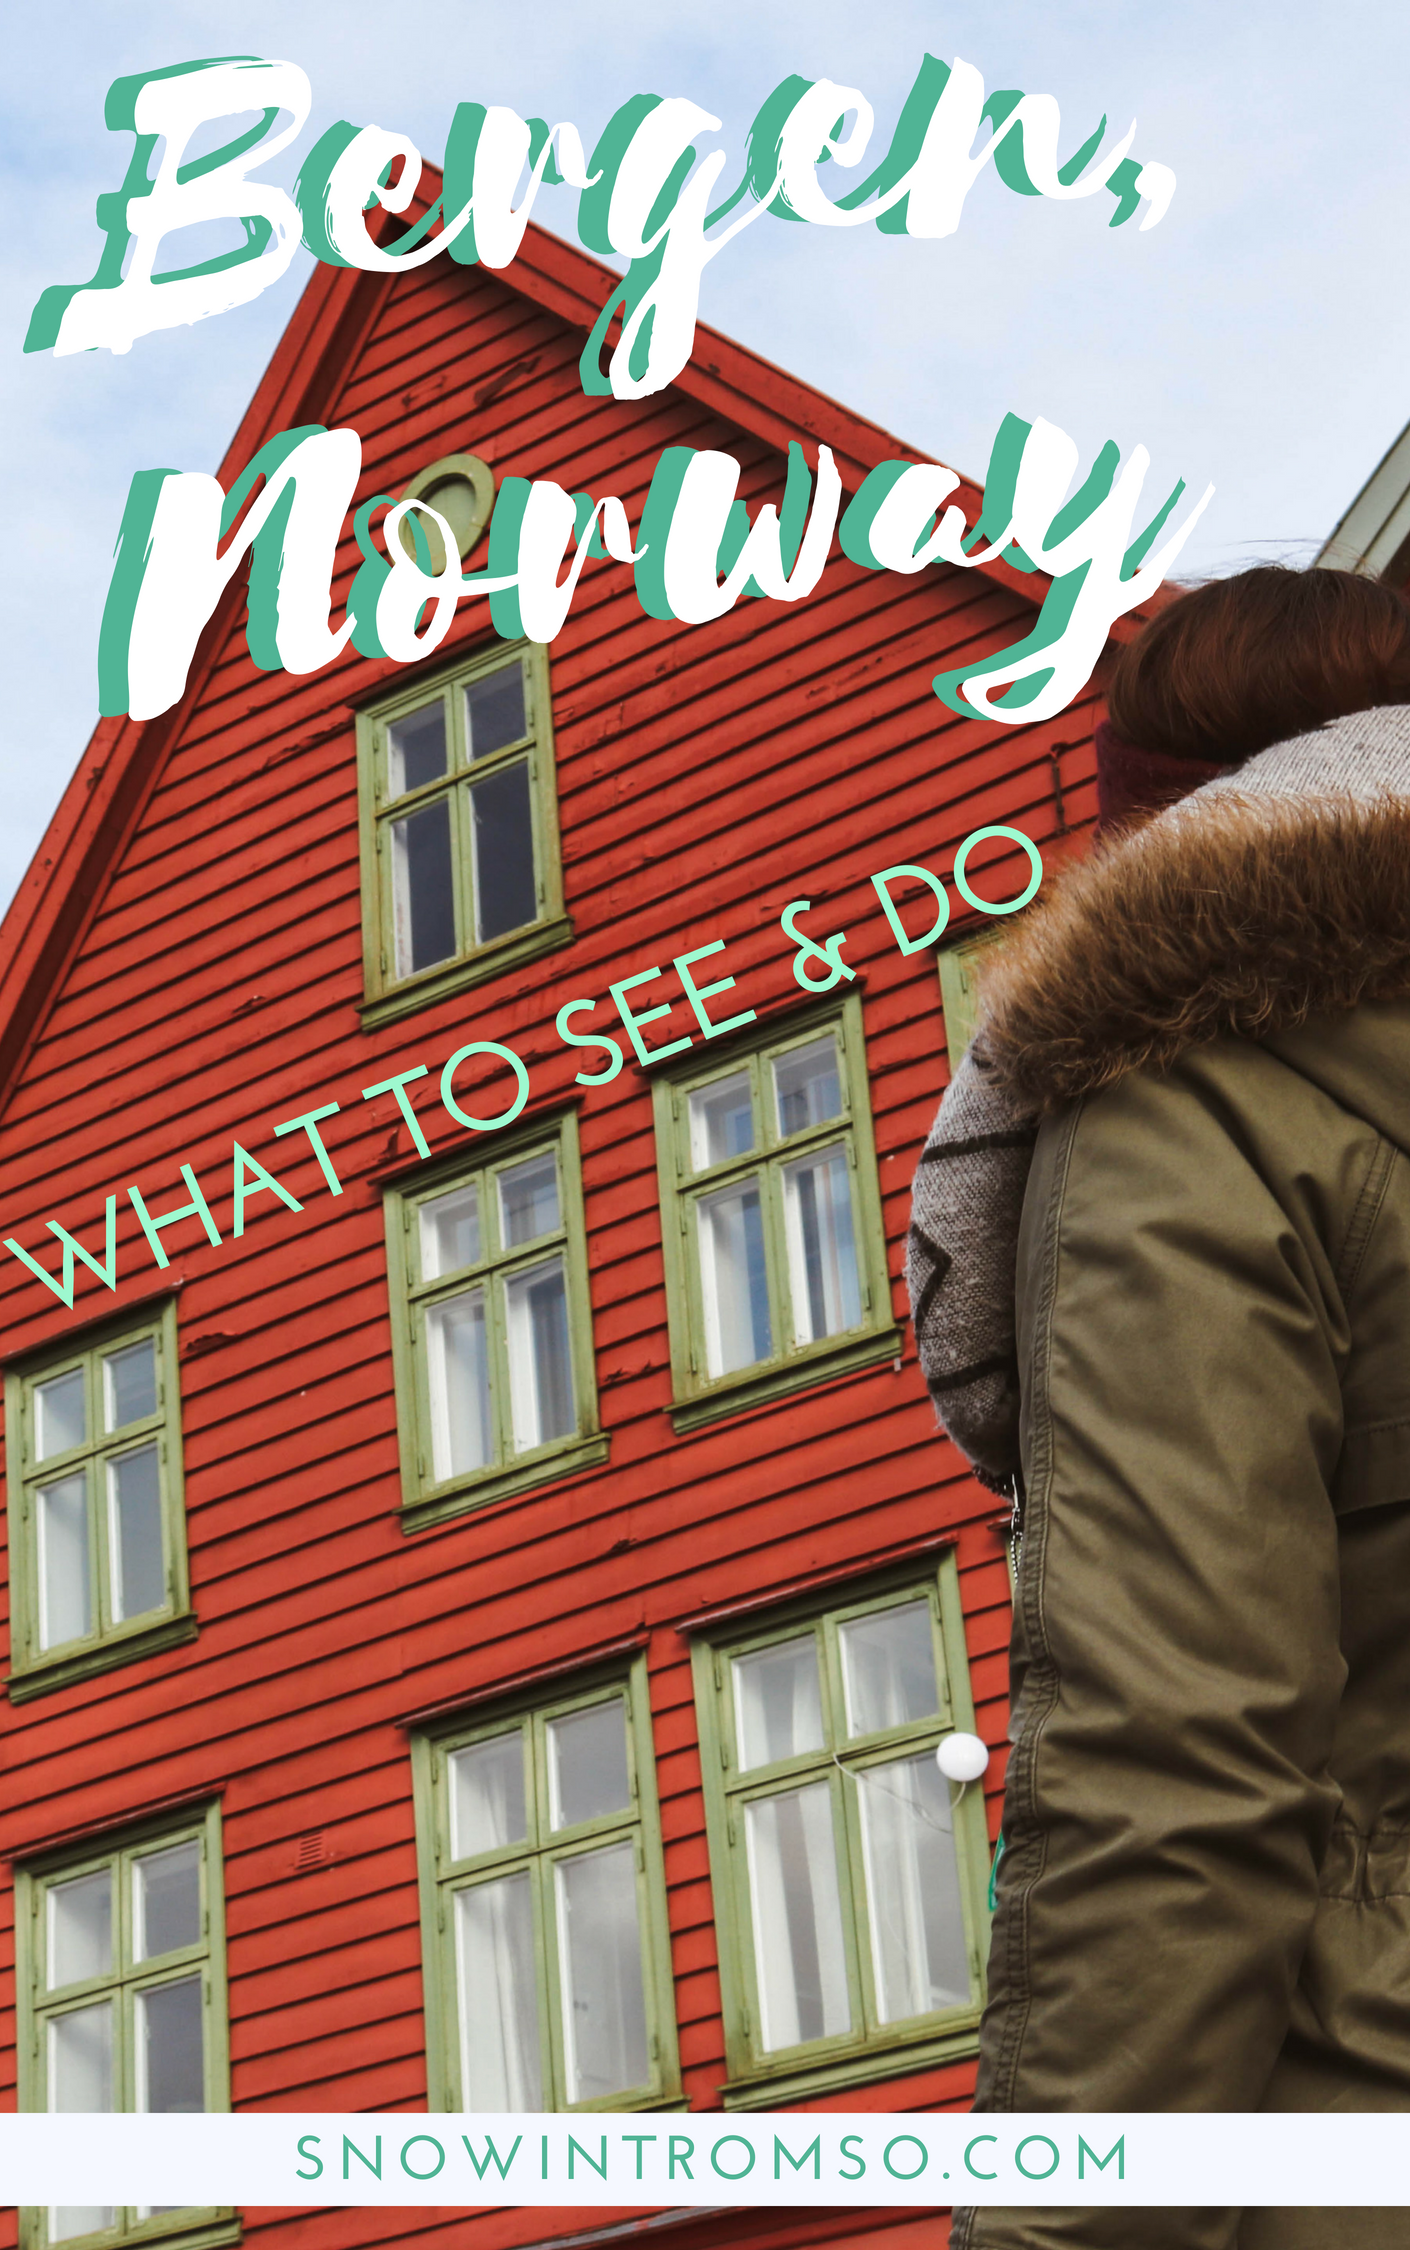 Click through to find out what there's to do and see in Bergen!